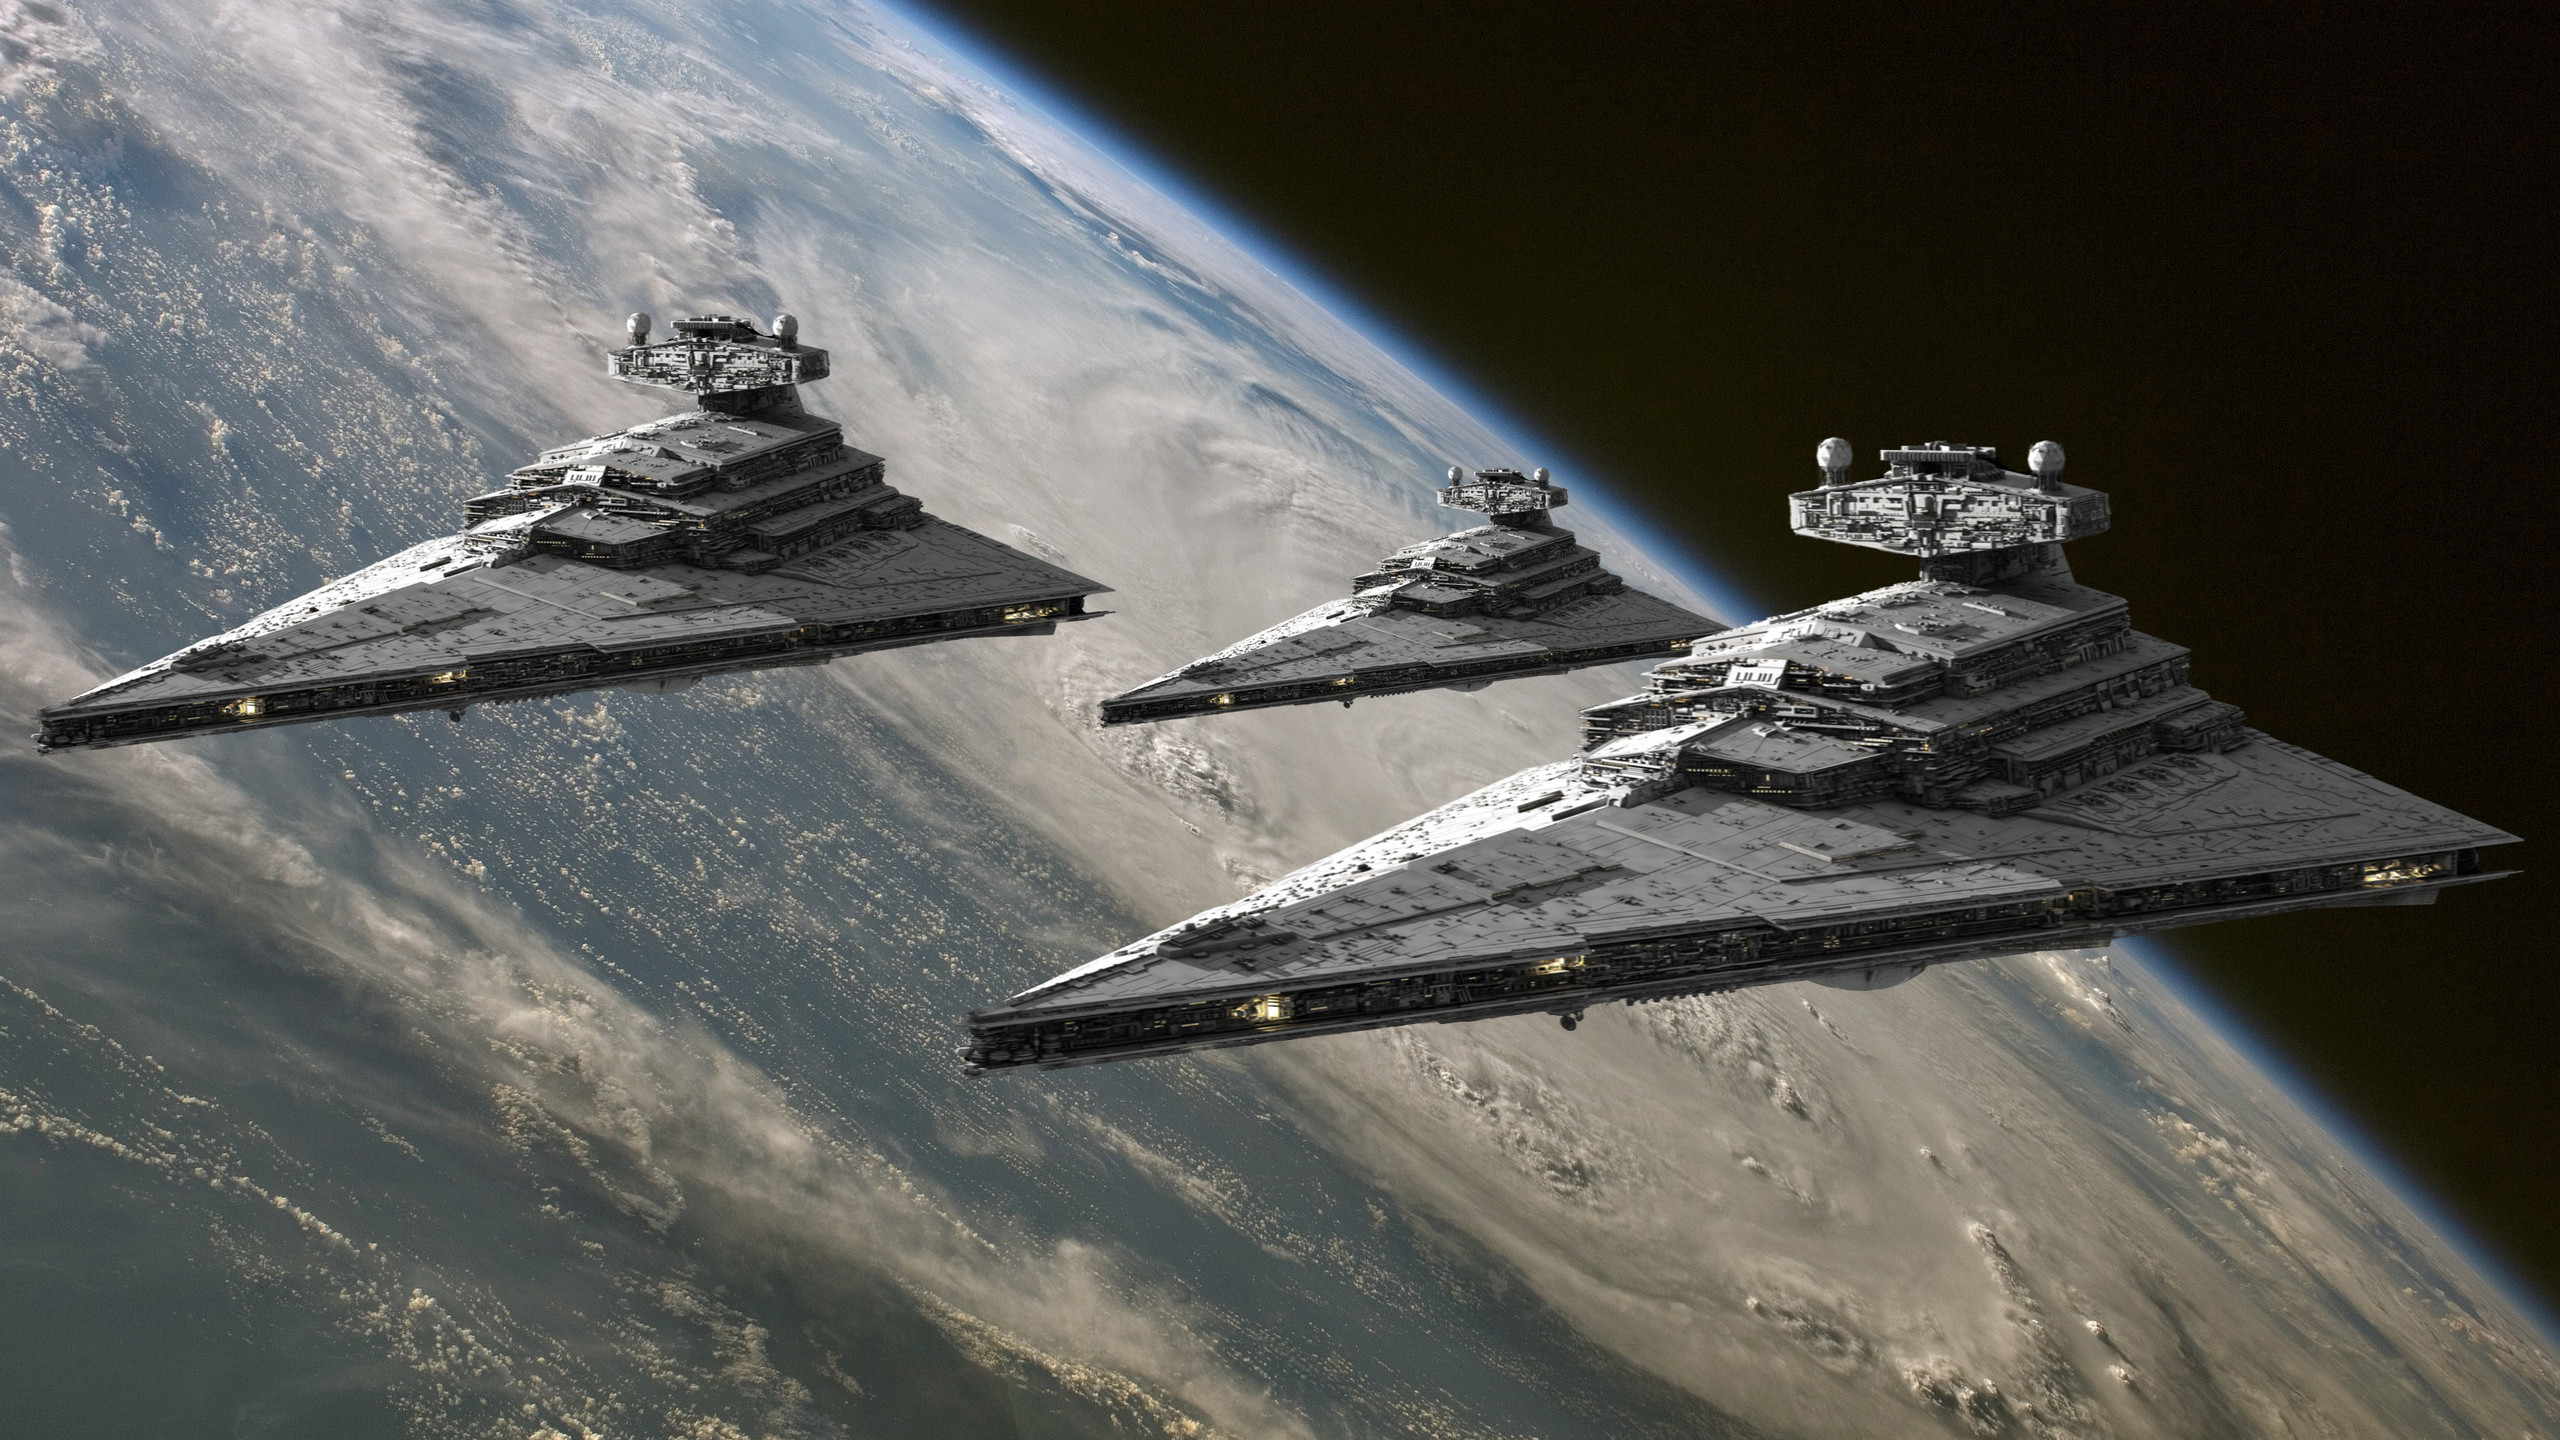 2560x1440 Star Wars Imperial Destroyer Space Planet · Star Wars WallpaperSpace Planets StarwarsEmpireWallpapers